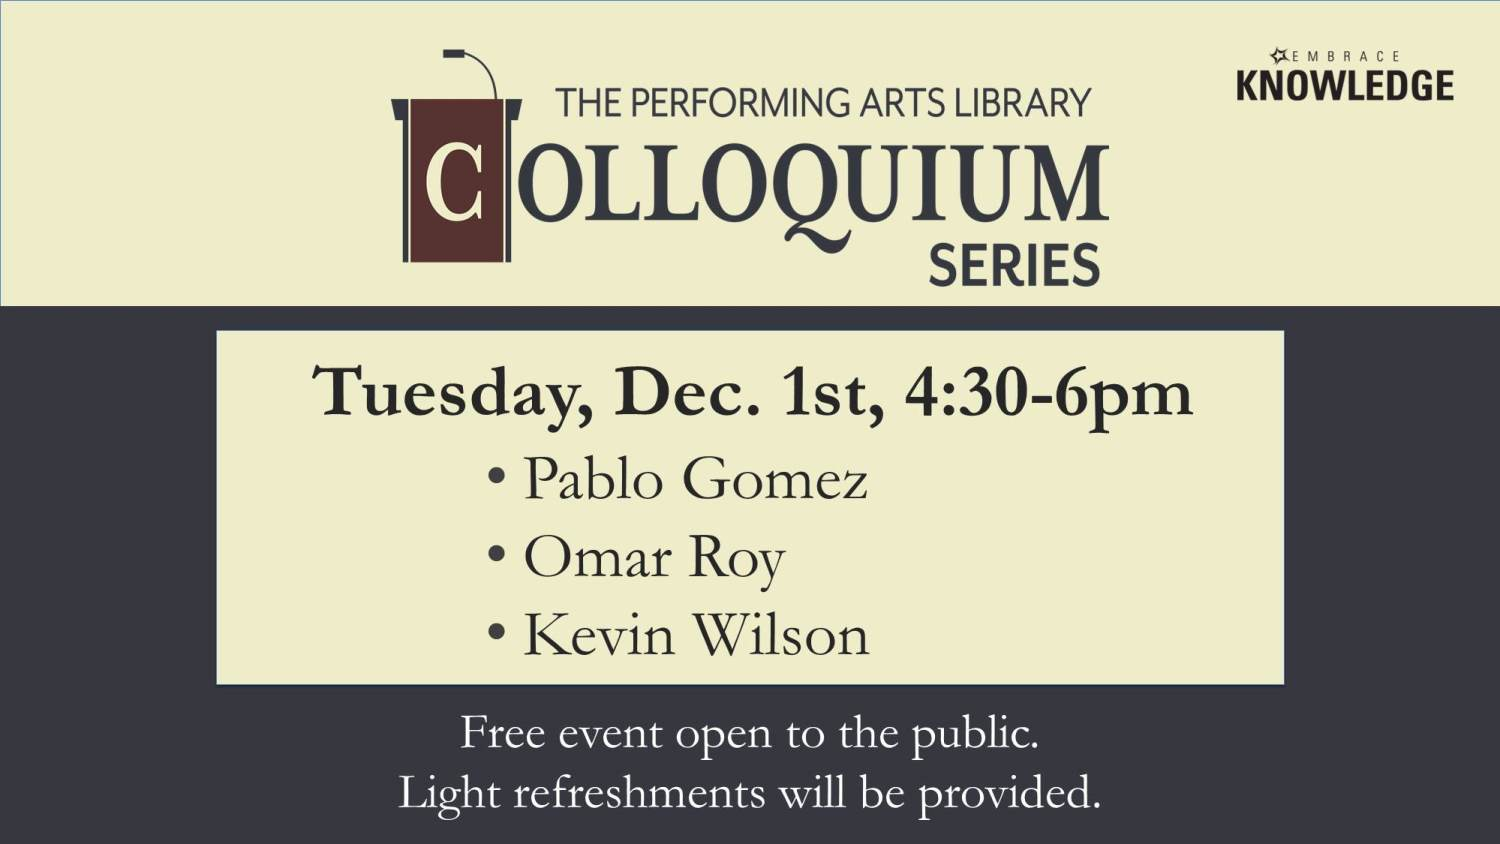 Show more about Presentations will focus on music theory topics at the next Colloquium!